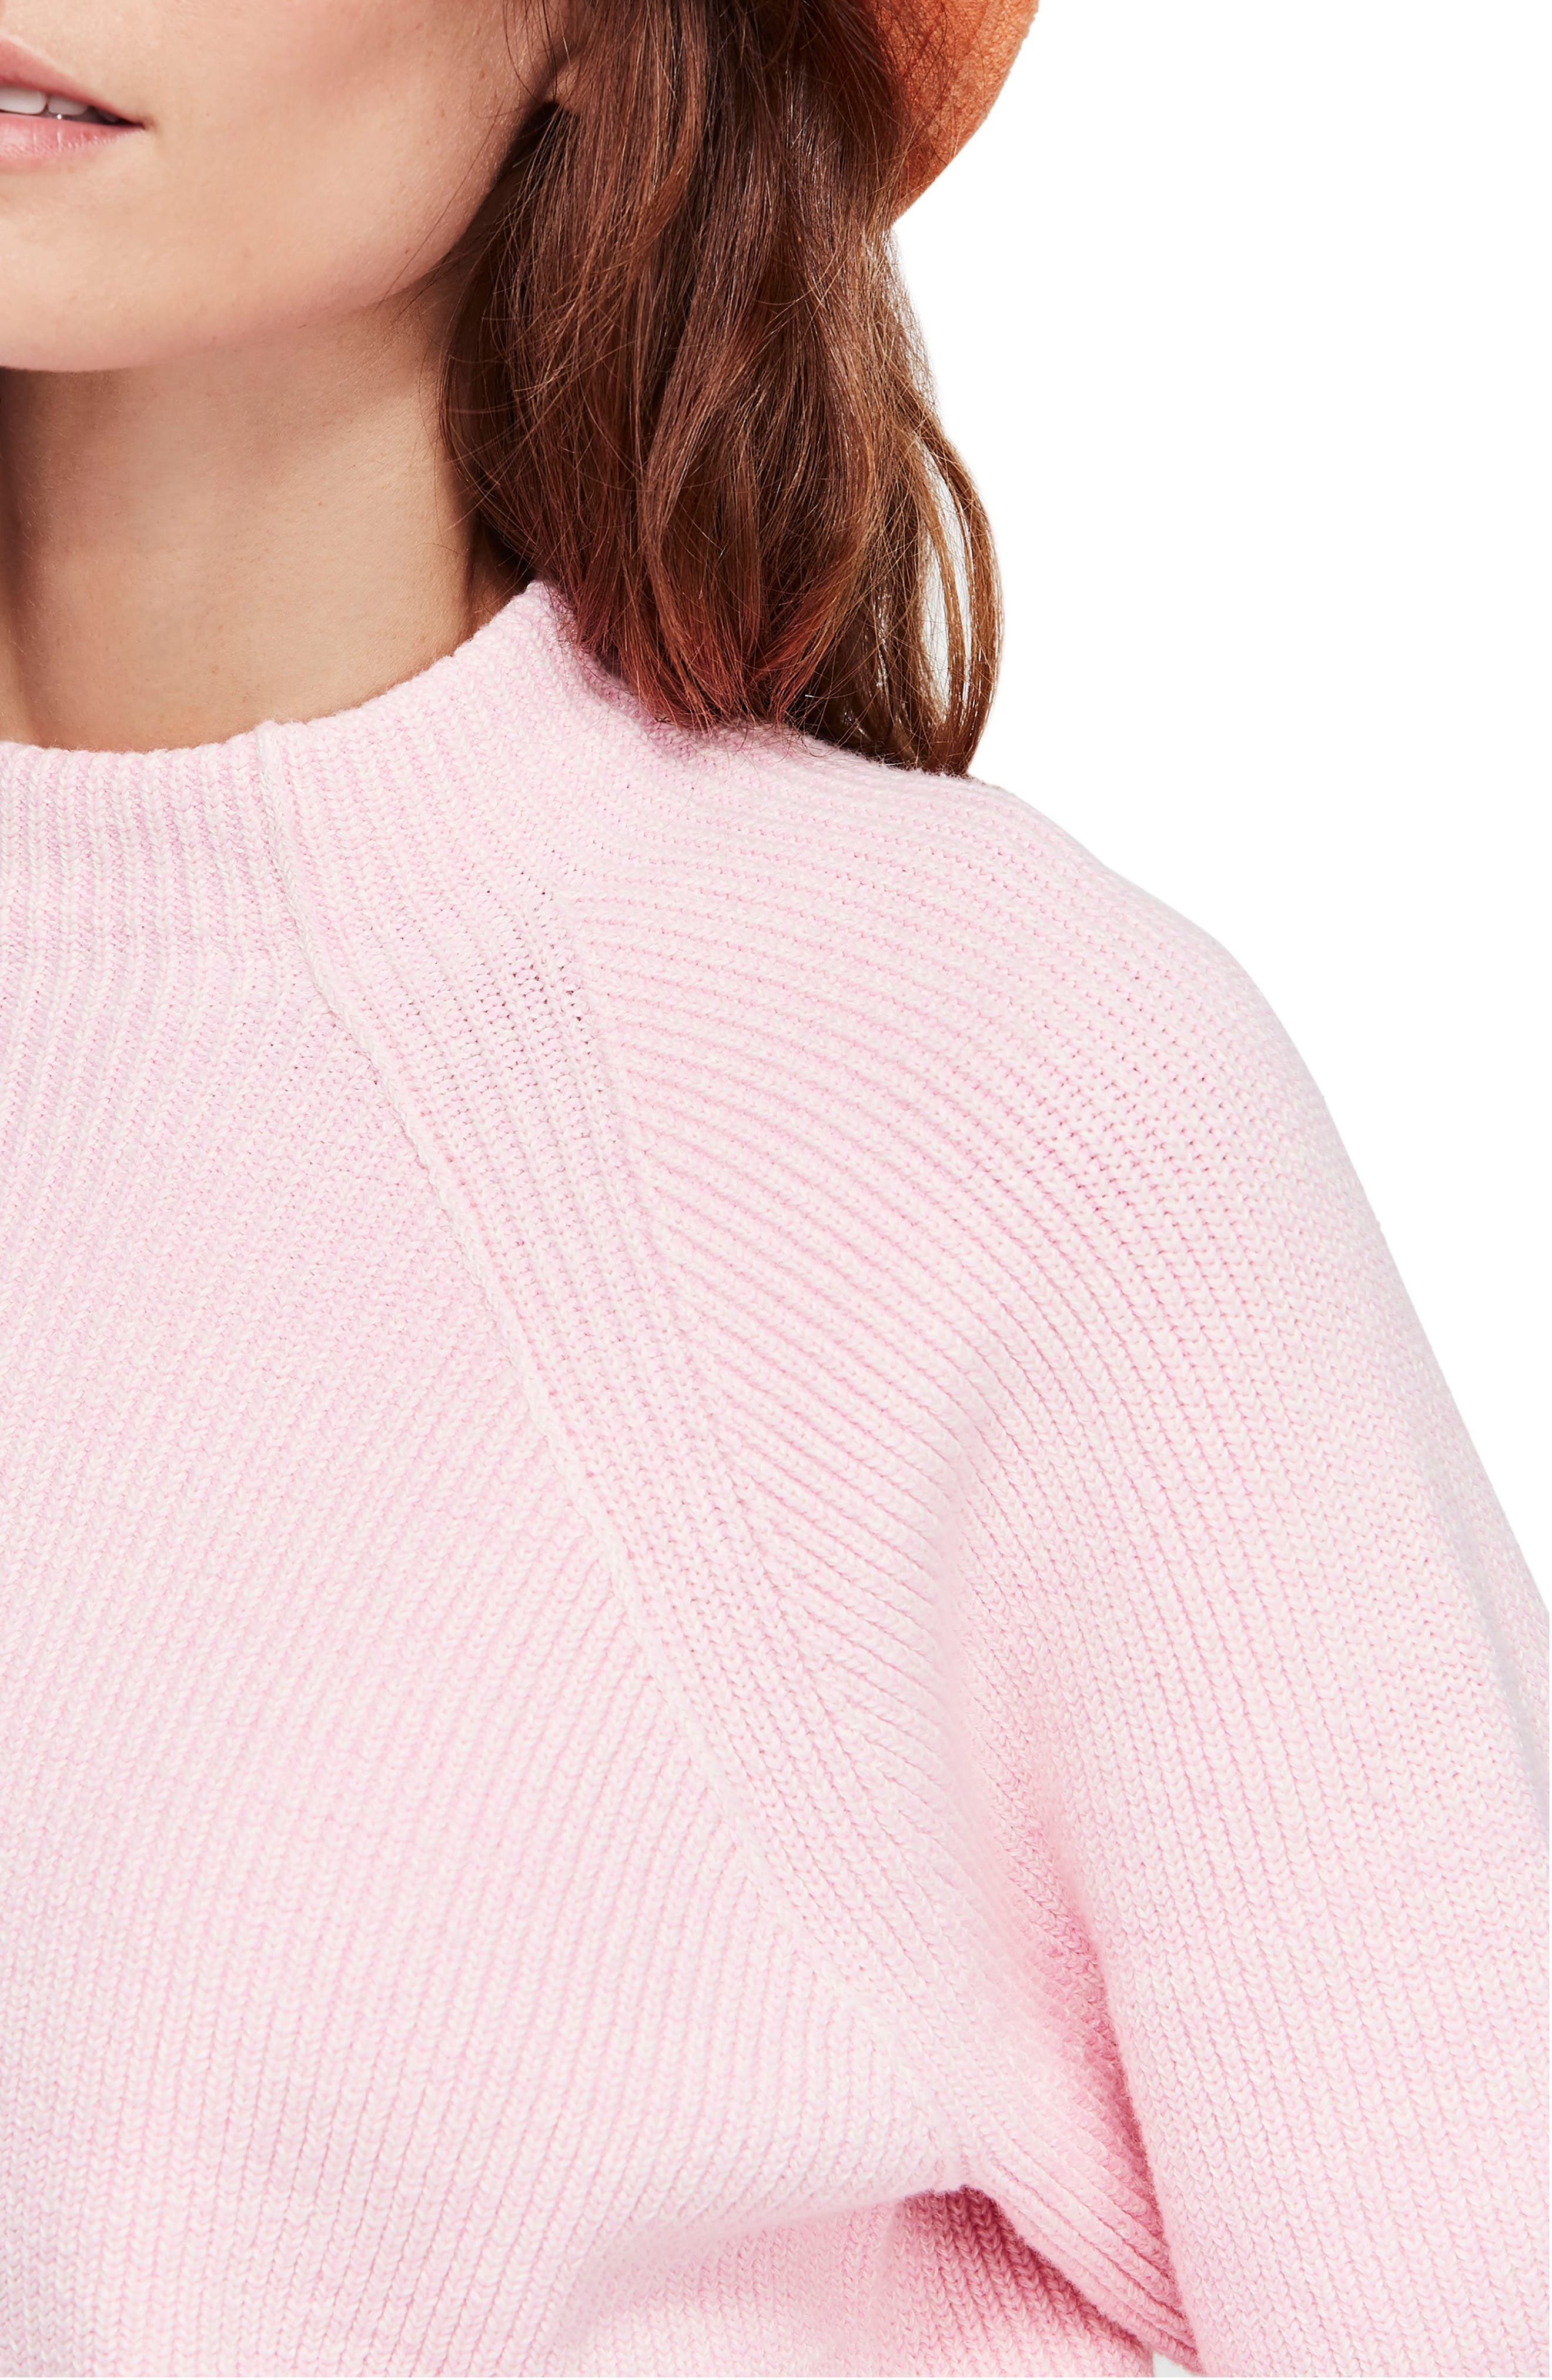 Too Good Sweater,                             Alternate thumbnail 4, color,                             PINK